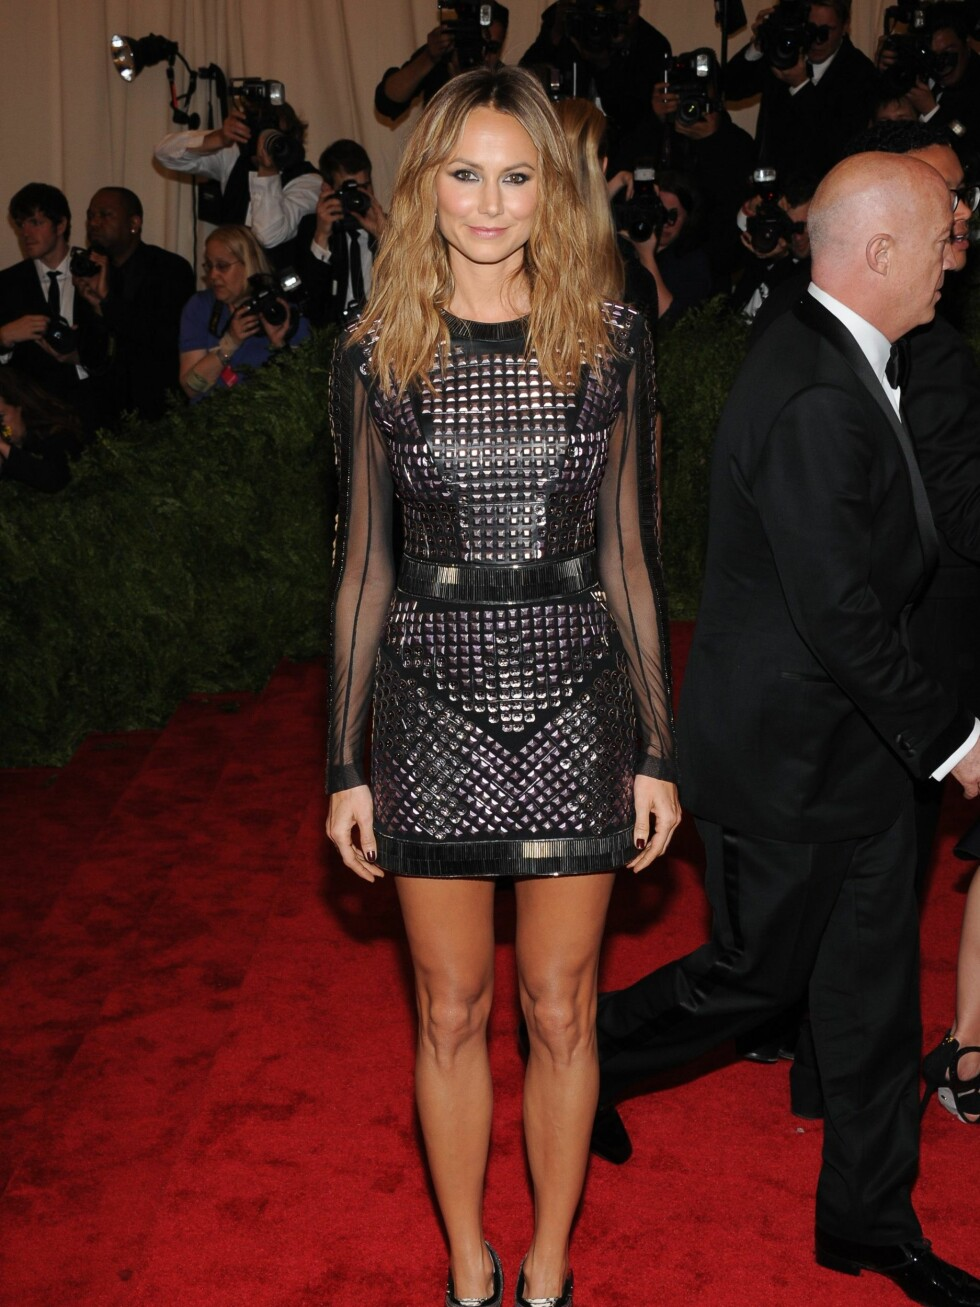 Stacy Keibler Foto: All Over Press